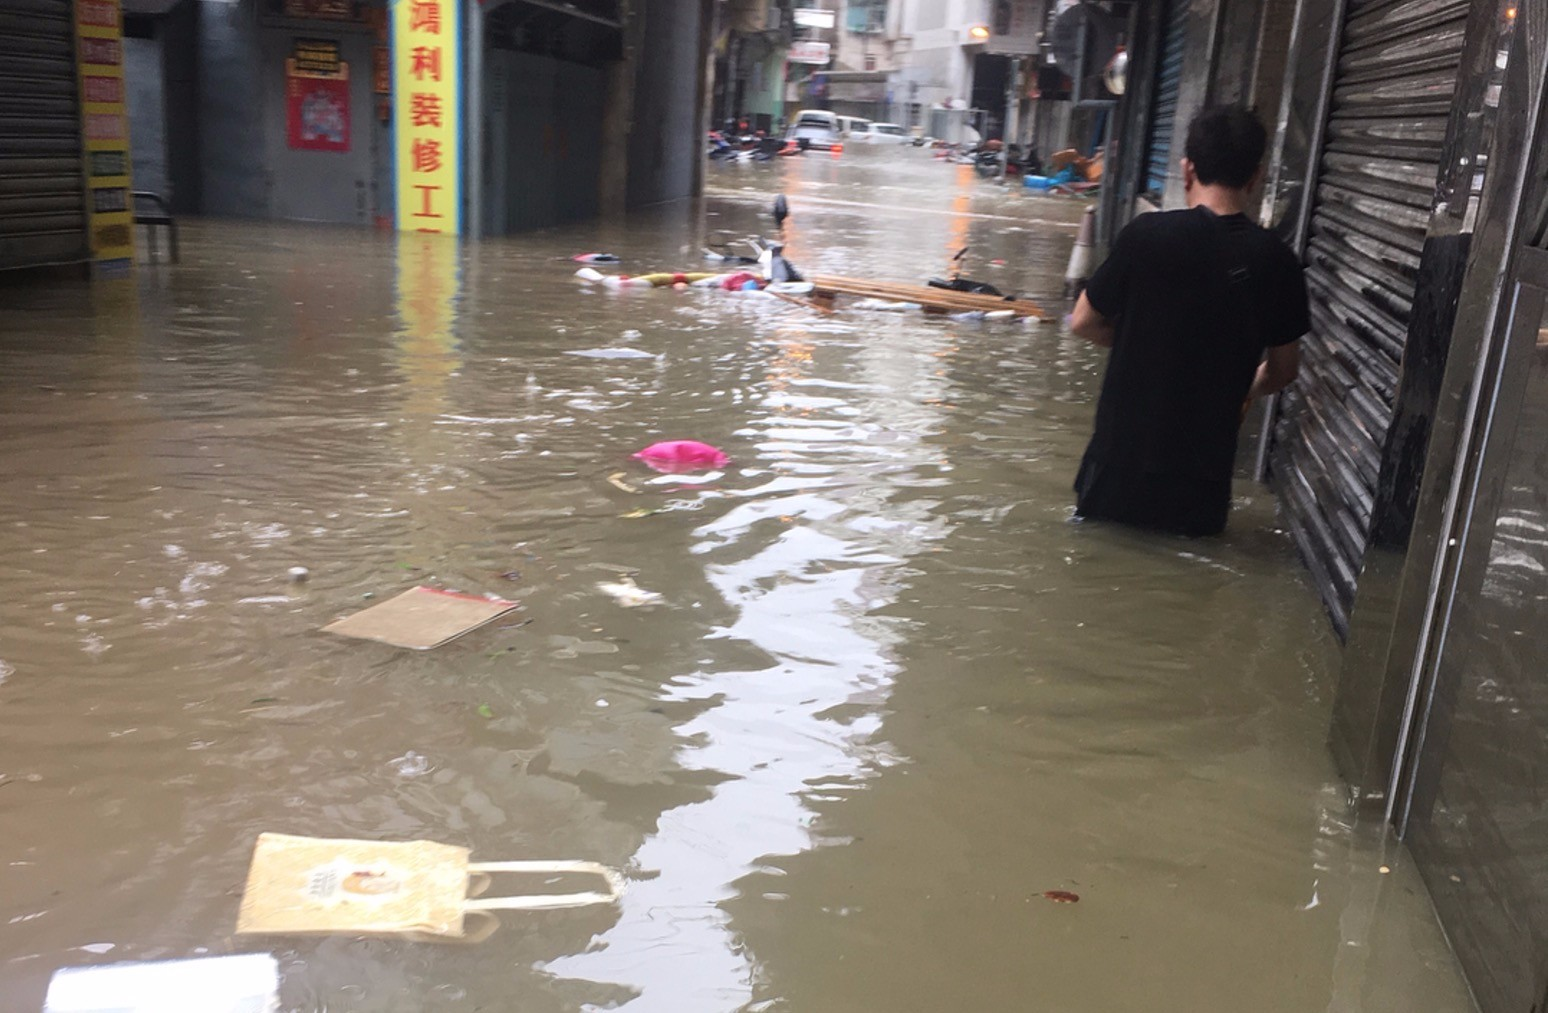 UPDATE: Typhoon Hato Death Toll Rises to 16 in China